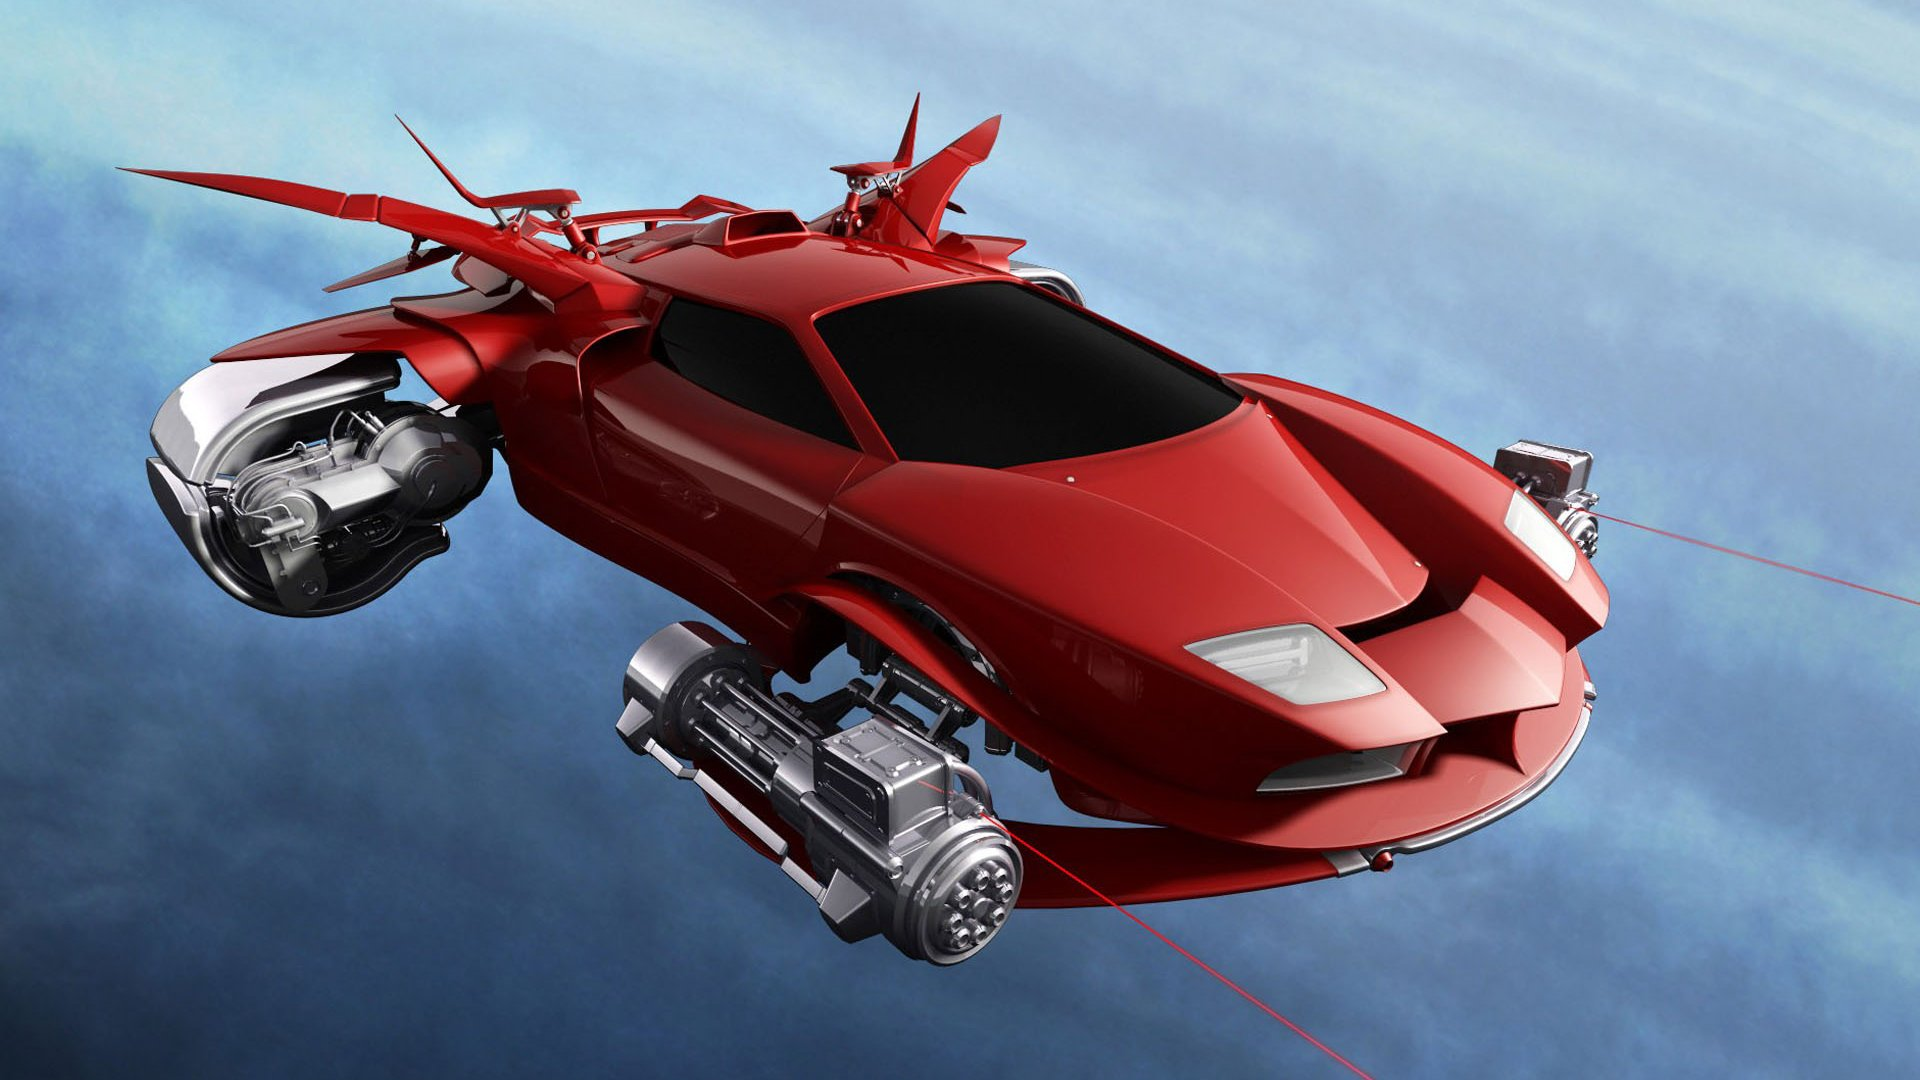 Download Flying Car hd Wallpaper  Unique HD Wallpapers 1920x1080